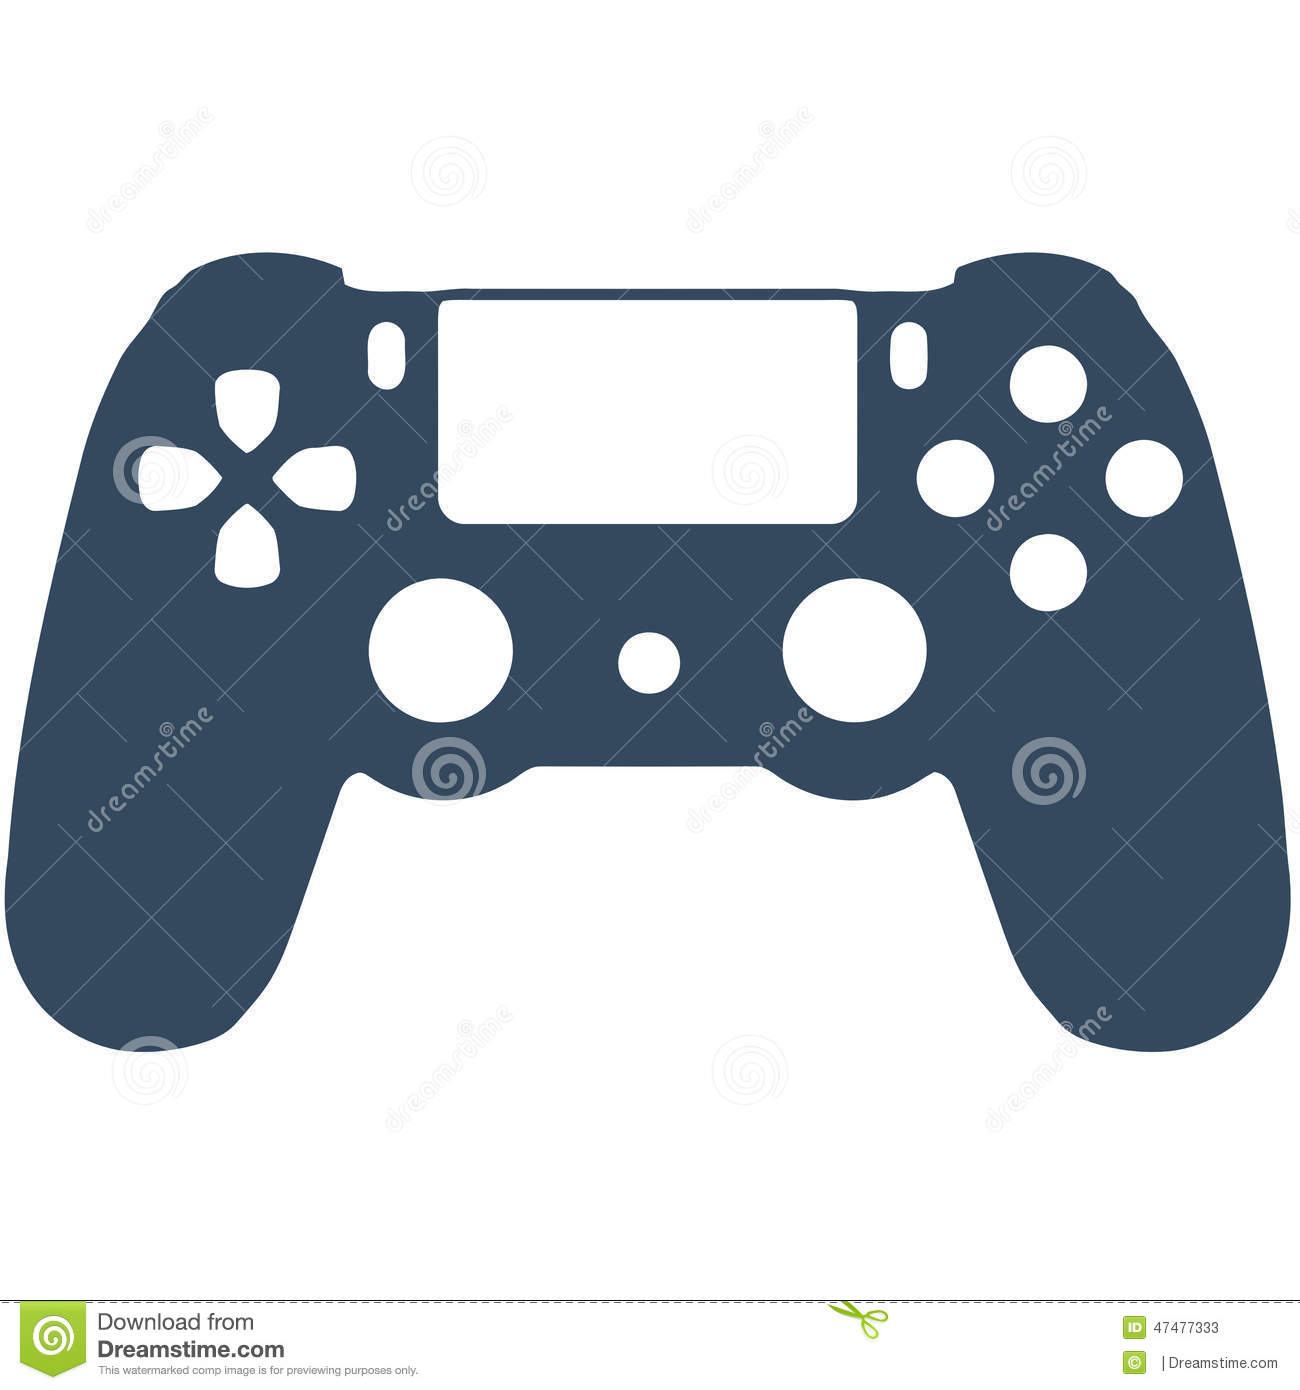 Controller clipart playstation 4 controller.  ps vector images